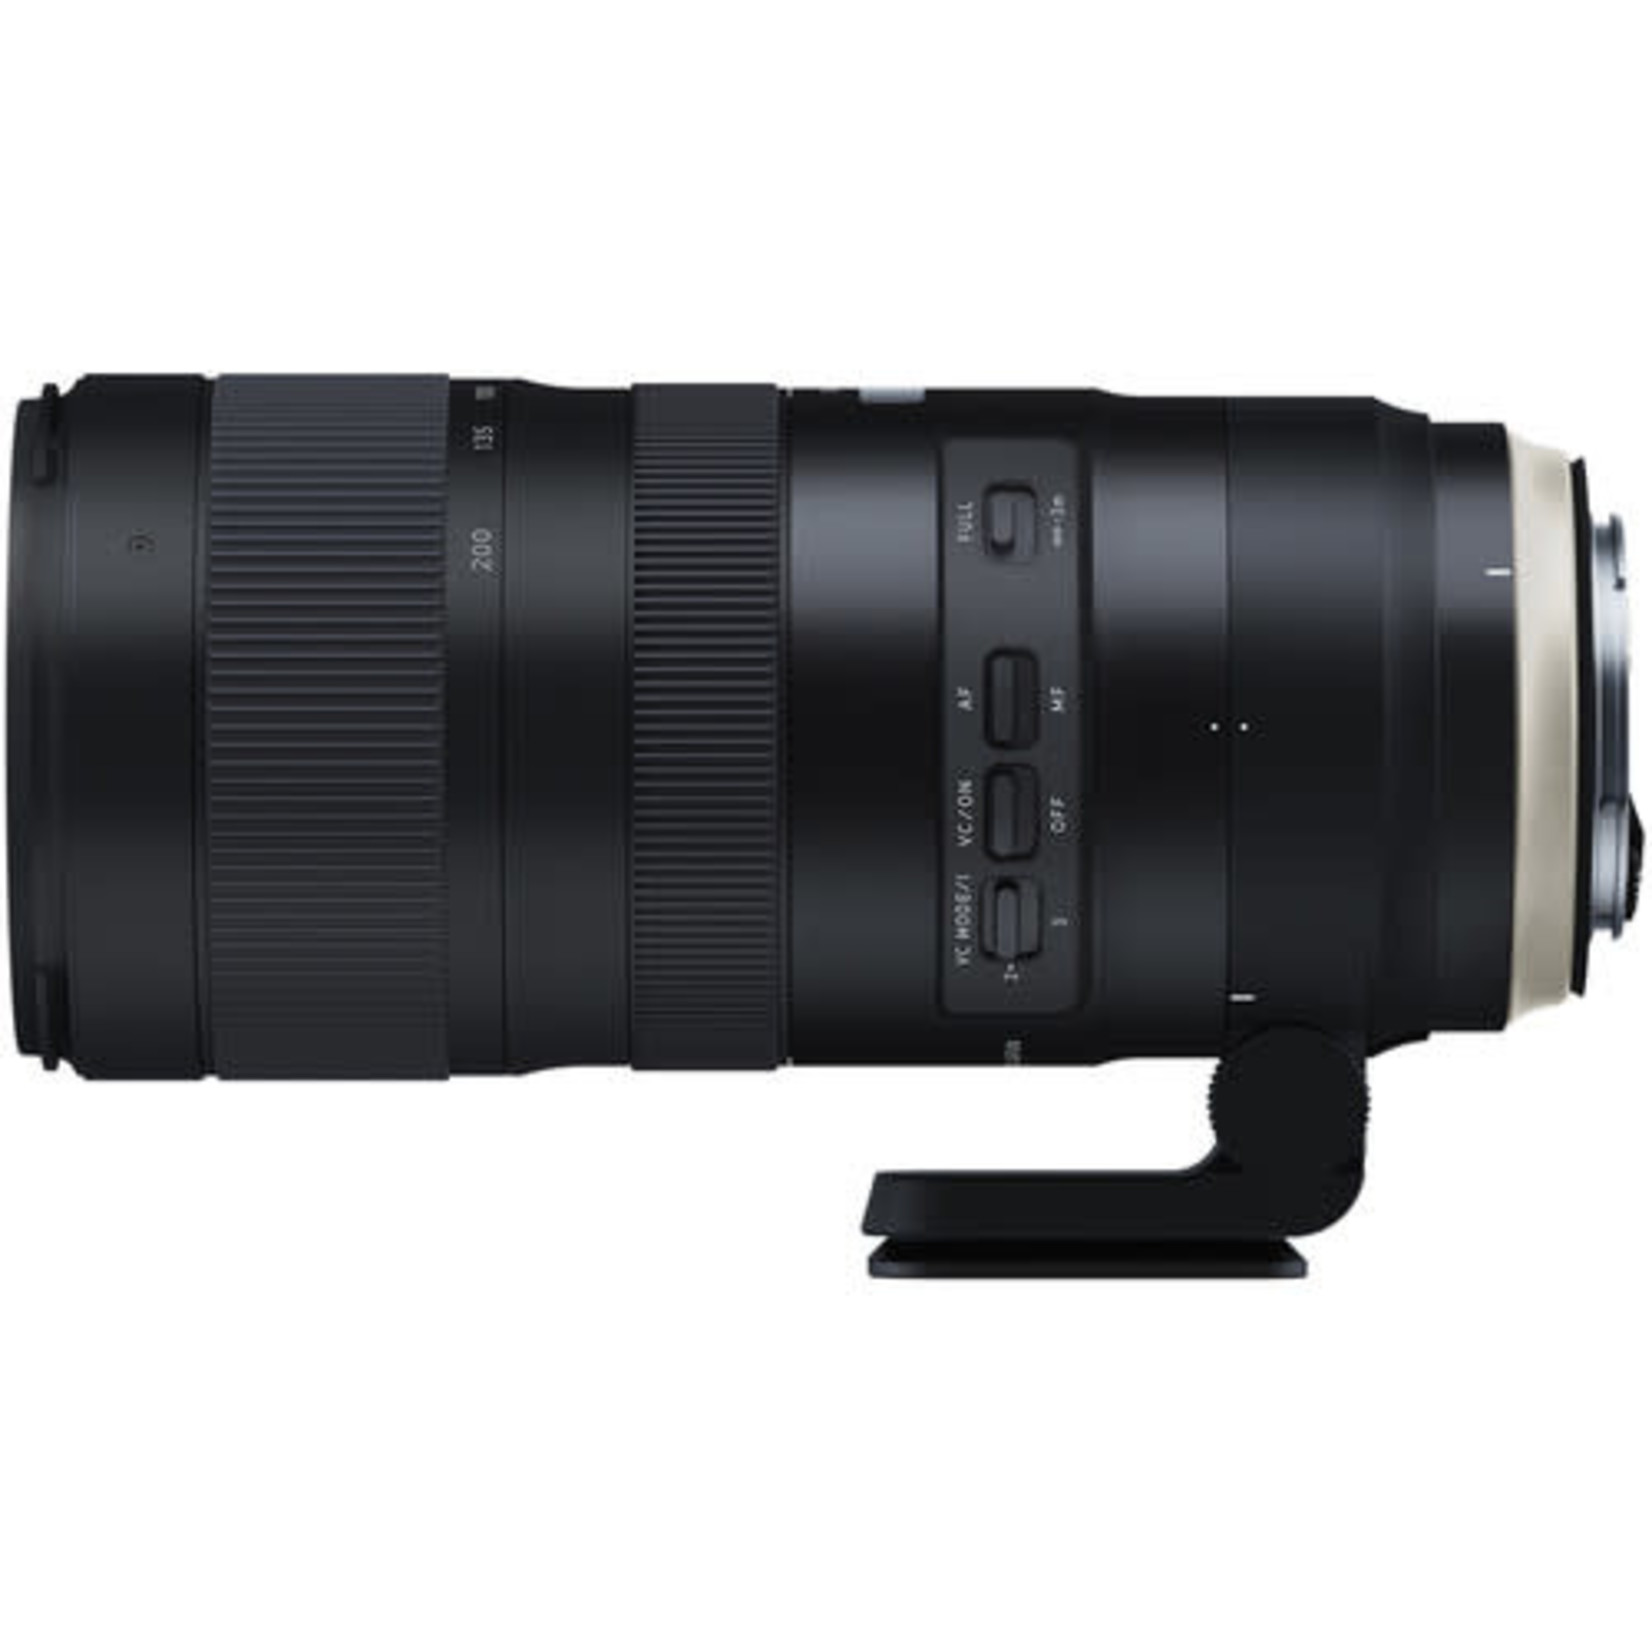 Tamron Tamron SP 70-200mm f/2.8 Di VC USD G2 Lens for Canon EF